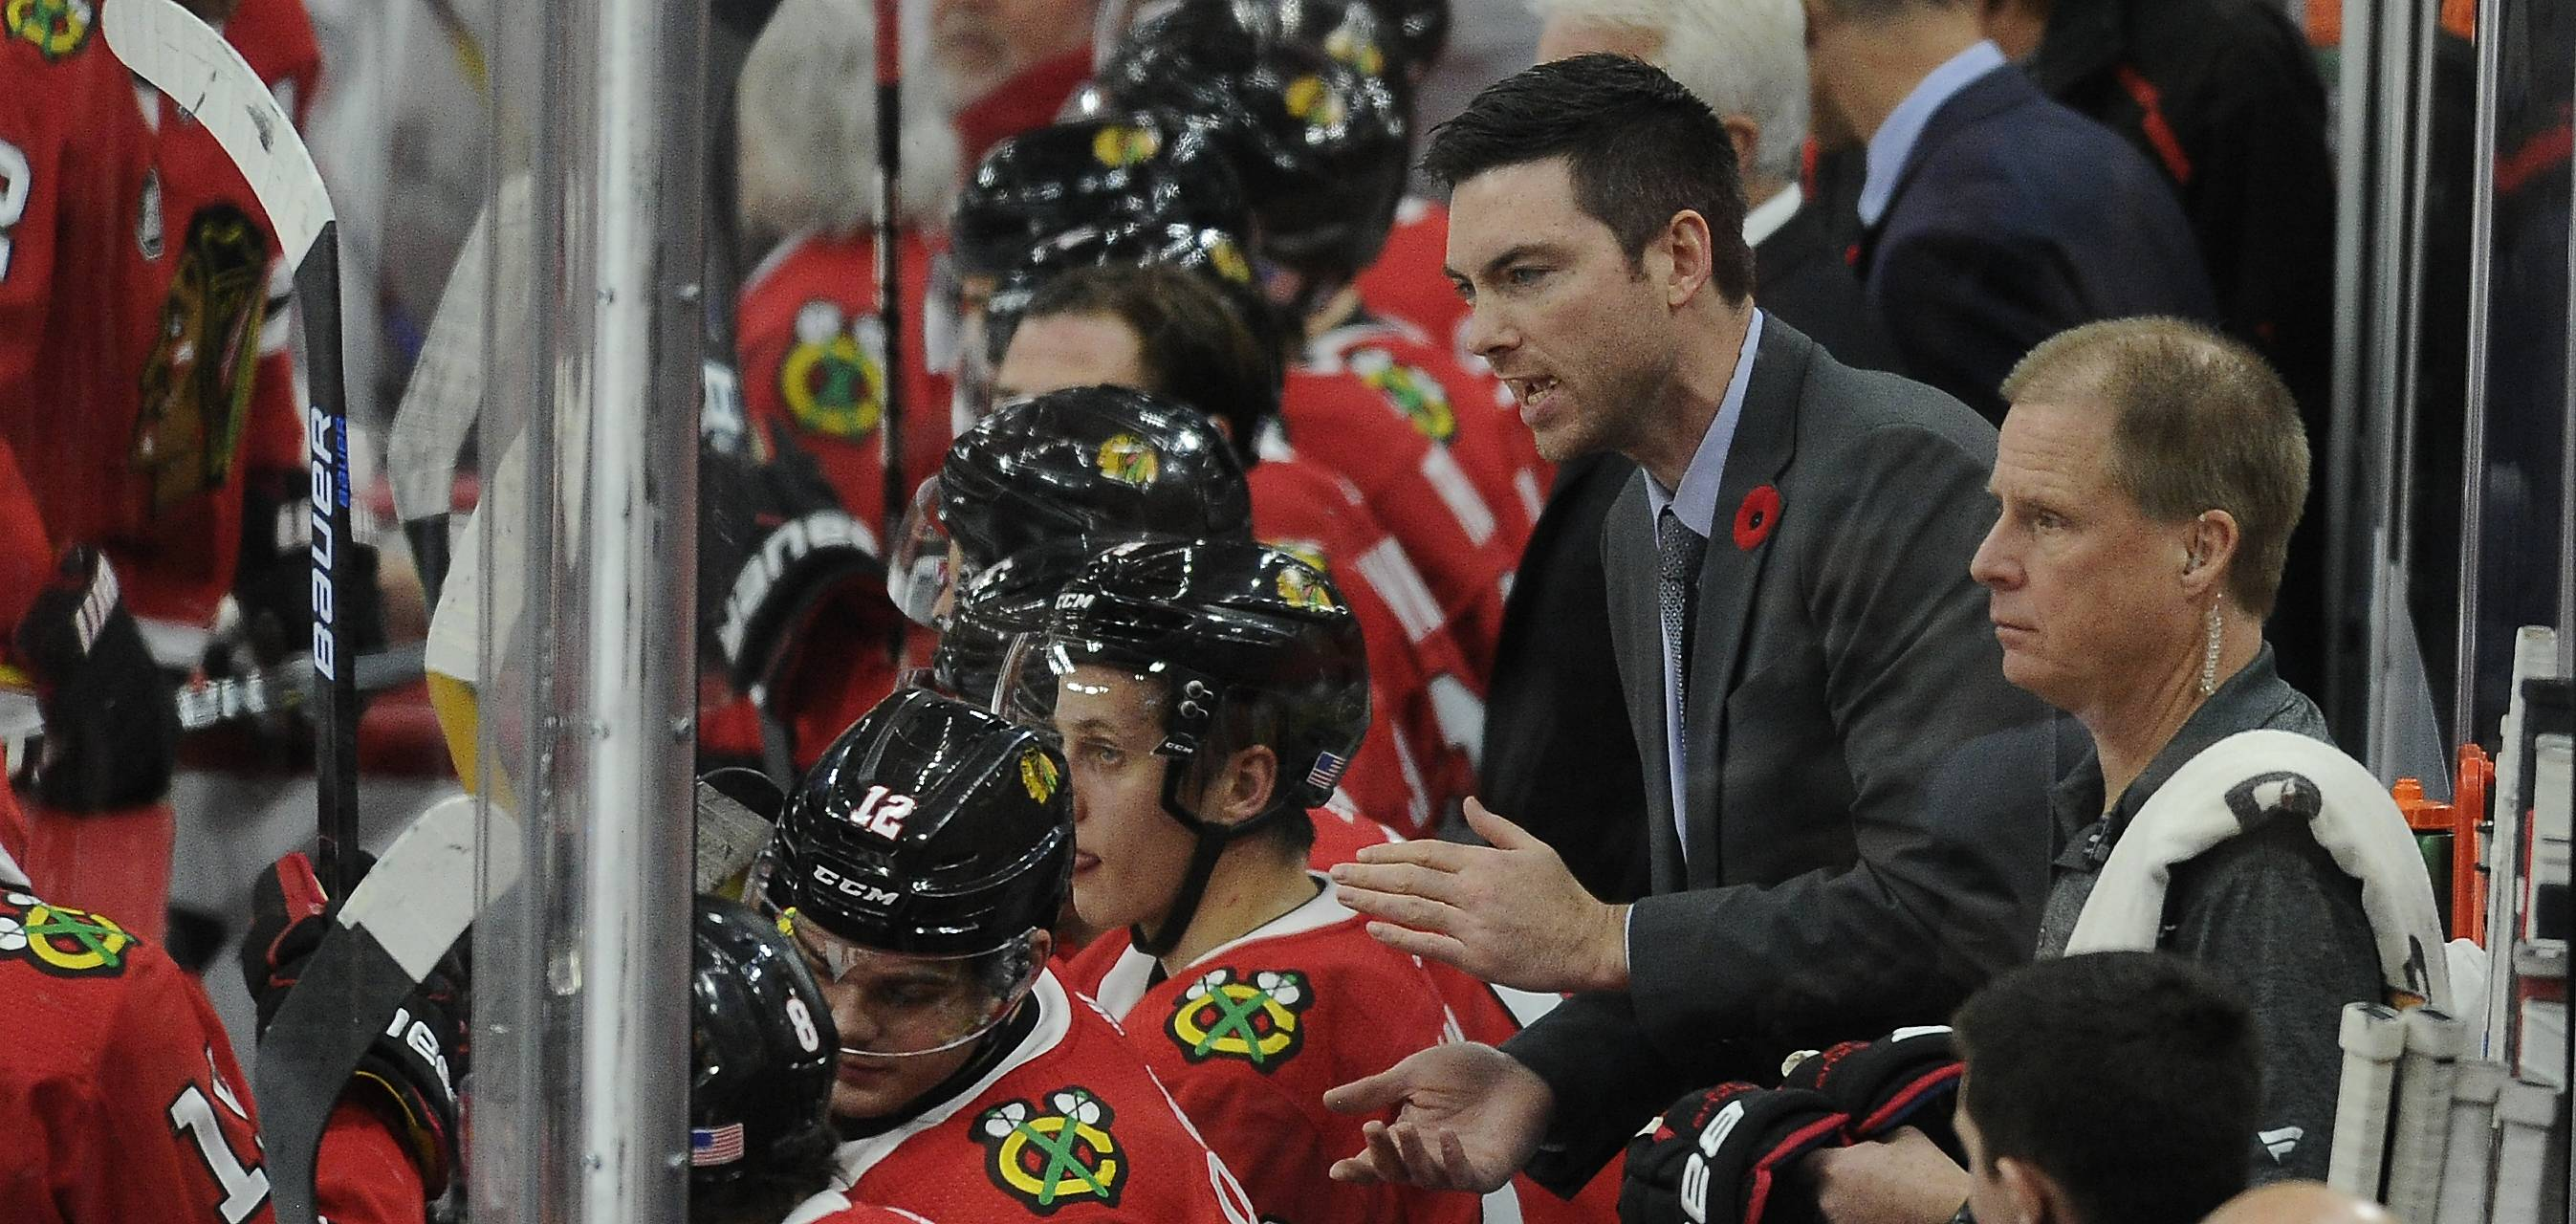 Chicago Blackhawks coach Jeremy Colliton gives advice to his players during the 4-3 loss to the Carolina Hurricanes at the United Center in Chicago. With a new coach behind the bench, the Blackhawks' bad habits remained the same Thursday night.